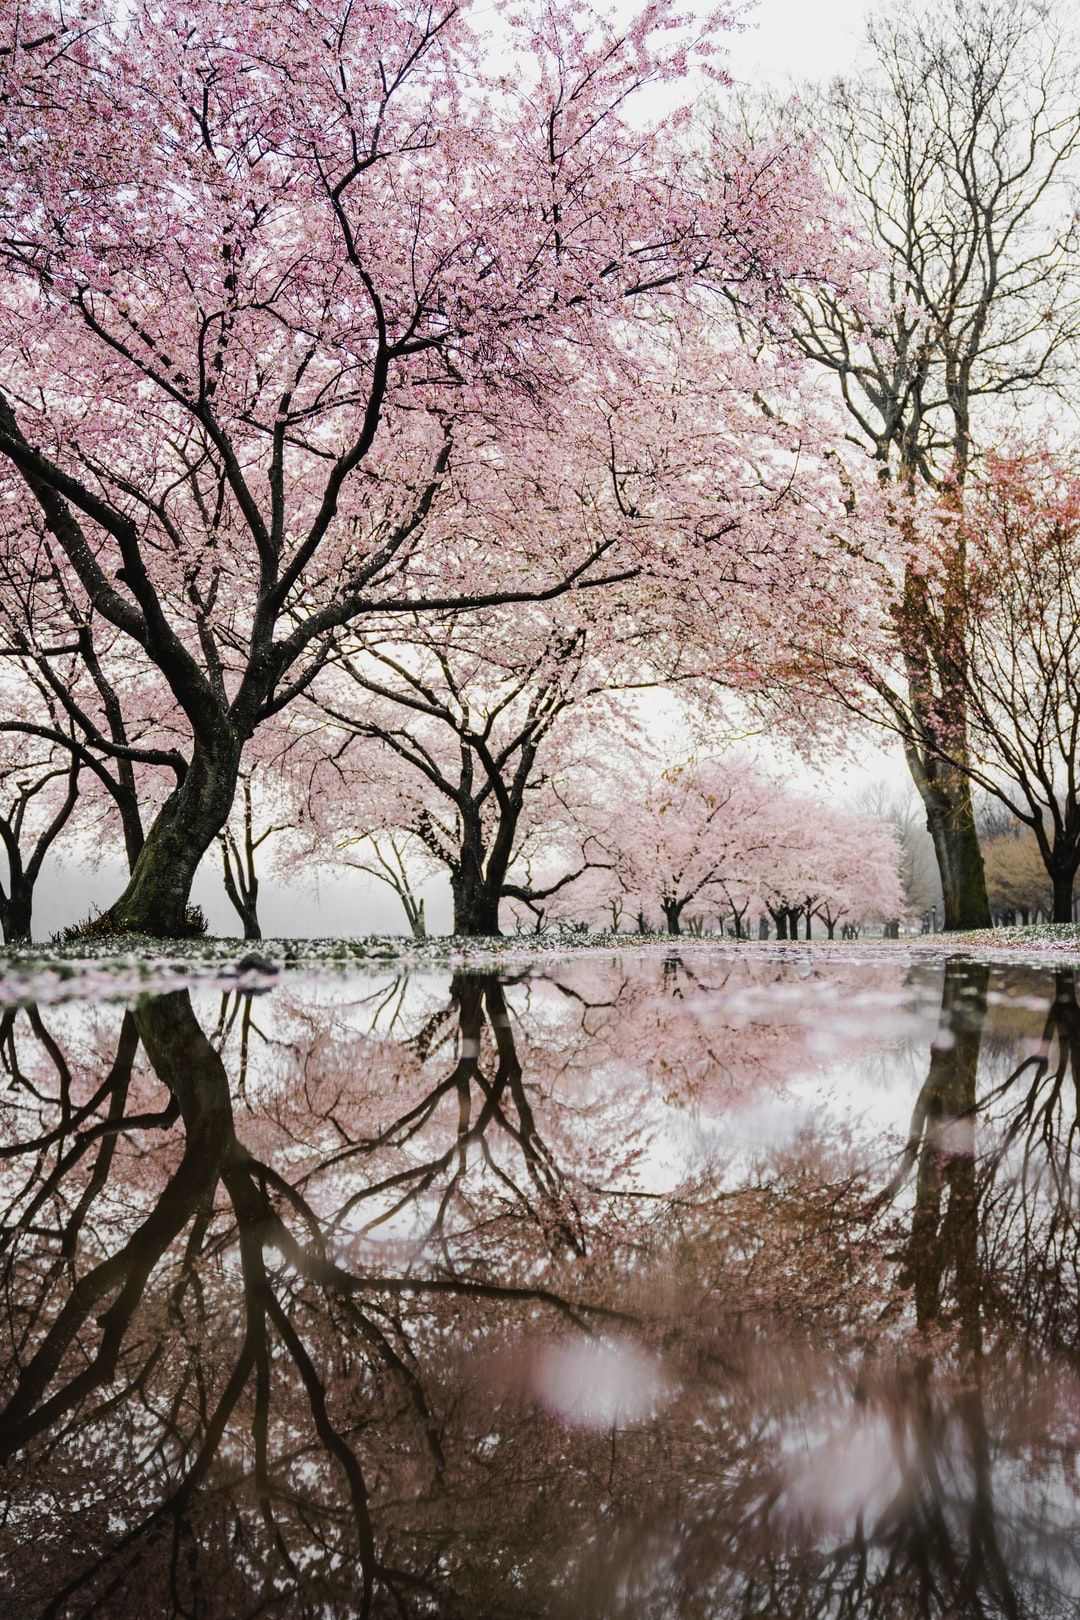 Cherry Blossom Trees Near River Photo Free Tree Image On Unsplash Spring Wallpaper Cherry Blossom Pictures Nature Backgrounds